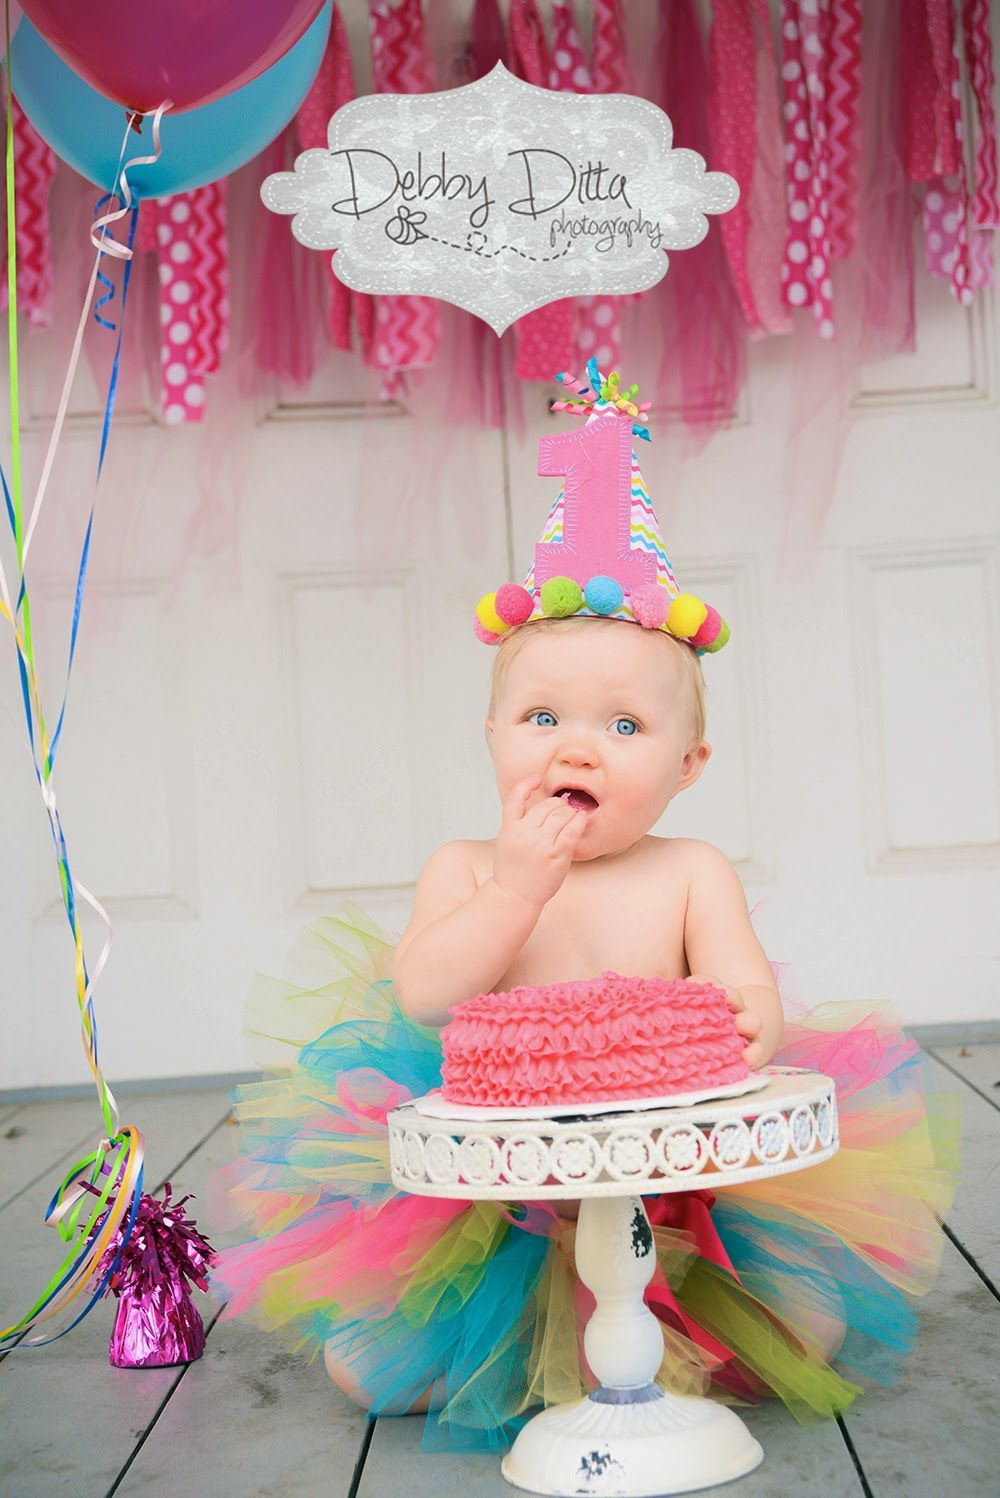 Cutest Cake Smash One Year Session Ever Baby Girl And Her Party Balloons Debby Ditta Photography Happy First Birthday Old